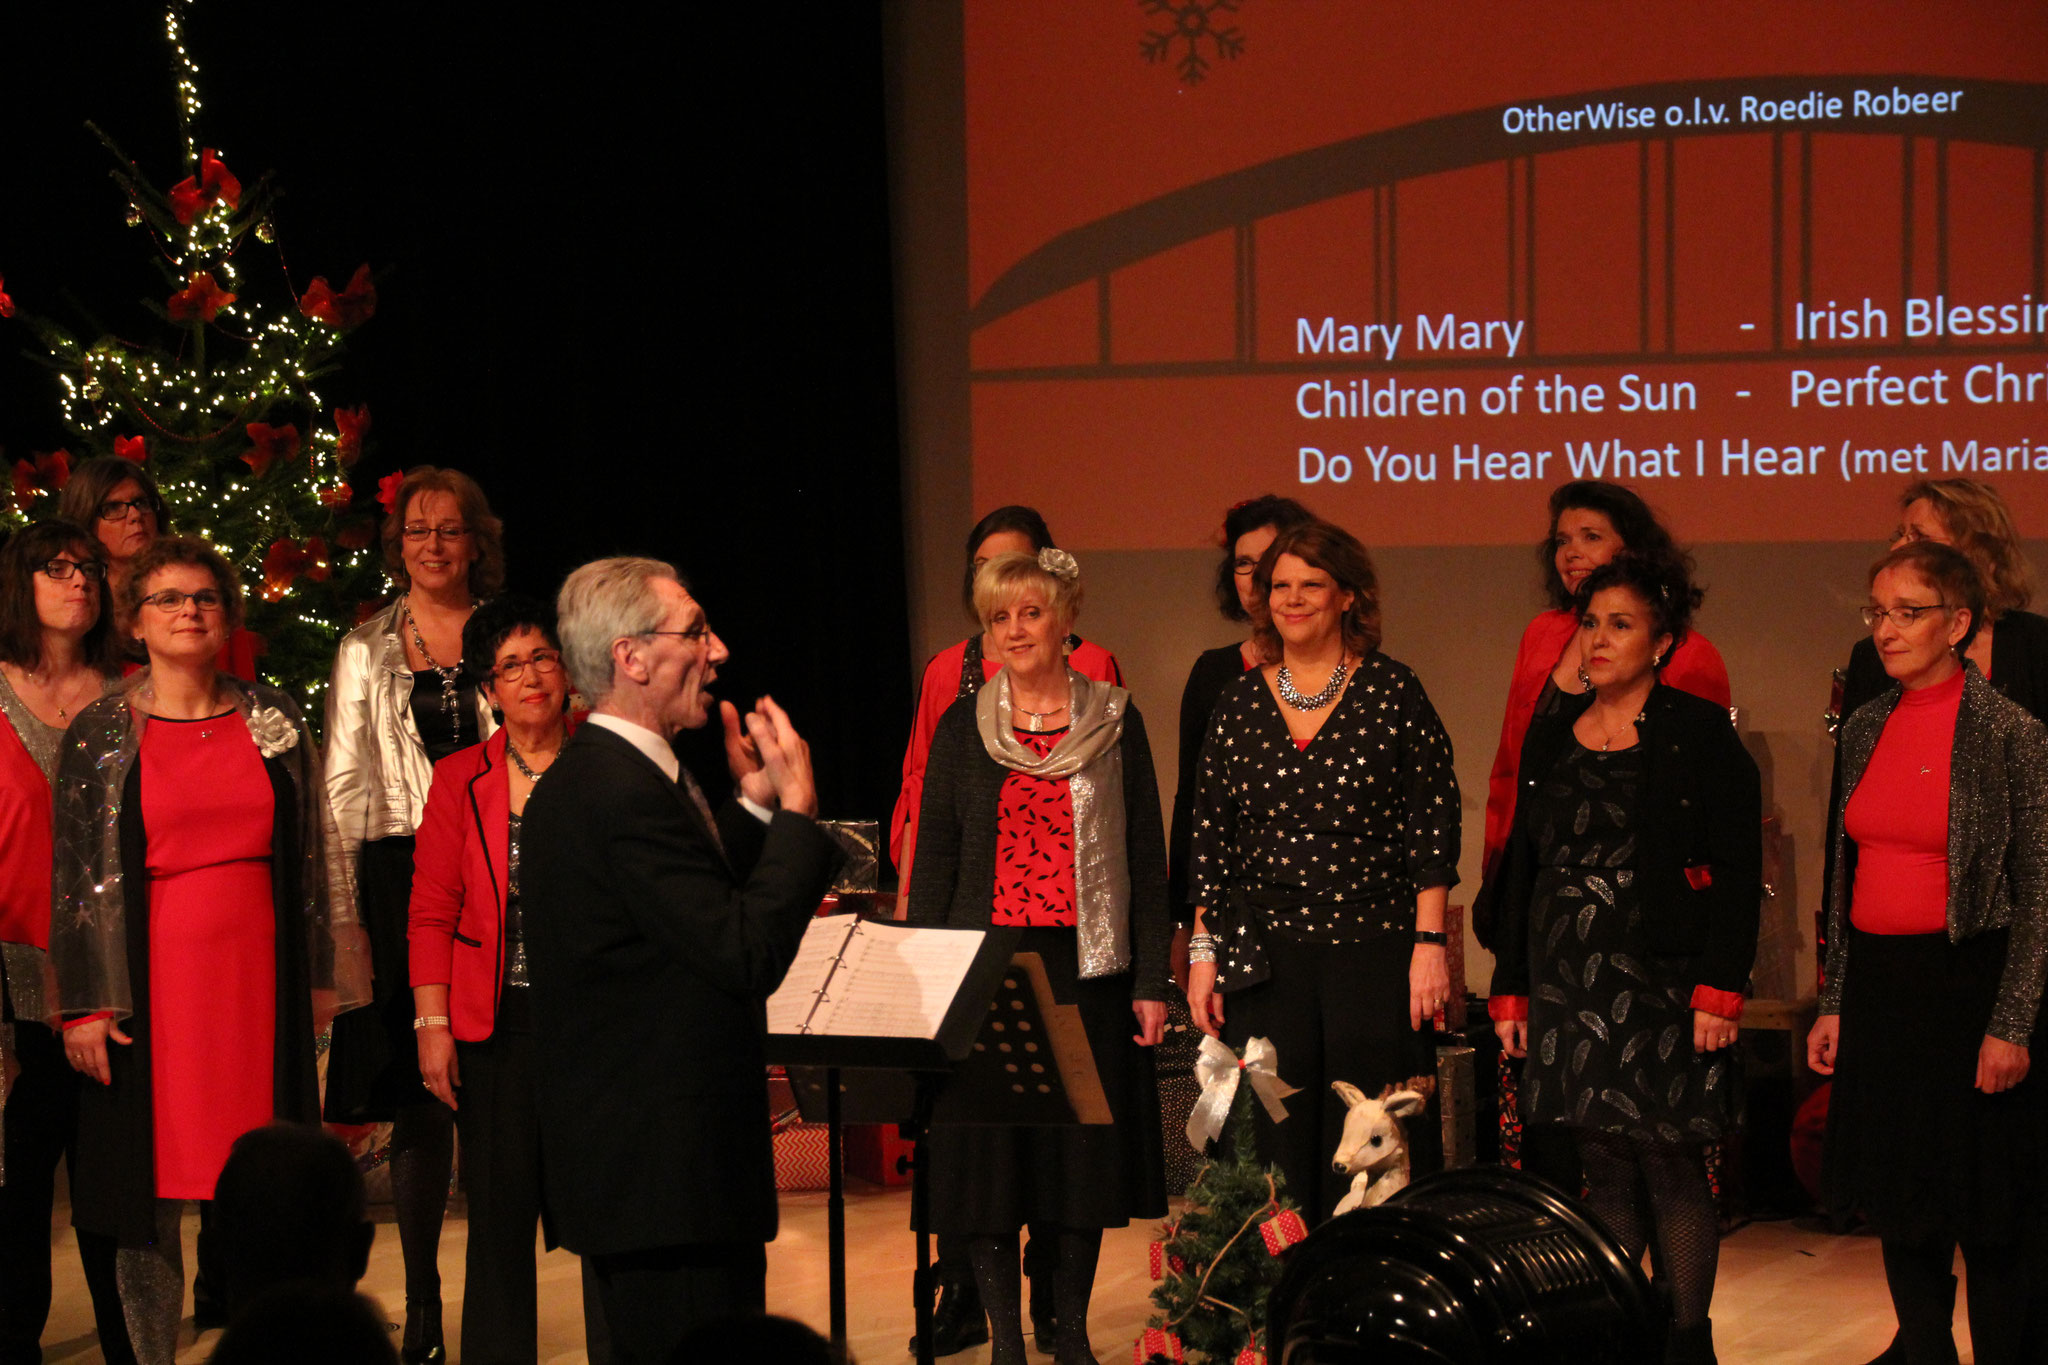 Kerstconcert OtherWise ChristmasWise 2, Culemborg, 16 december 2017